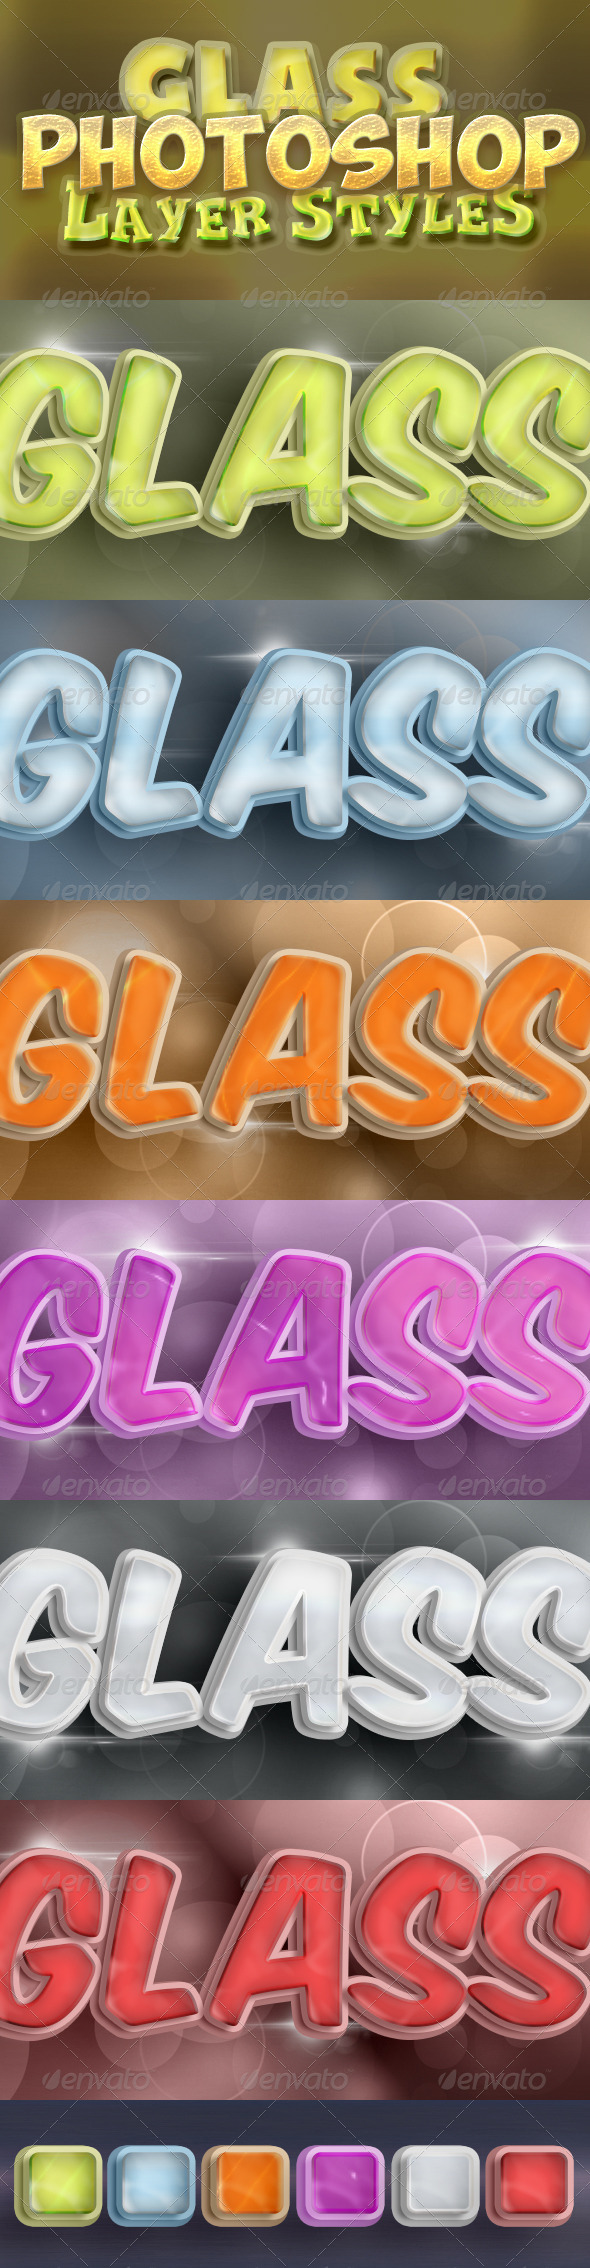 GraphicRiver Photoshop Glass Styles 5138277